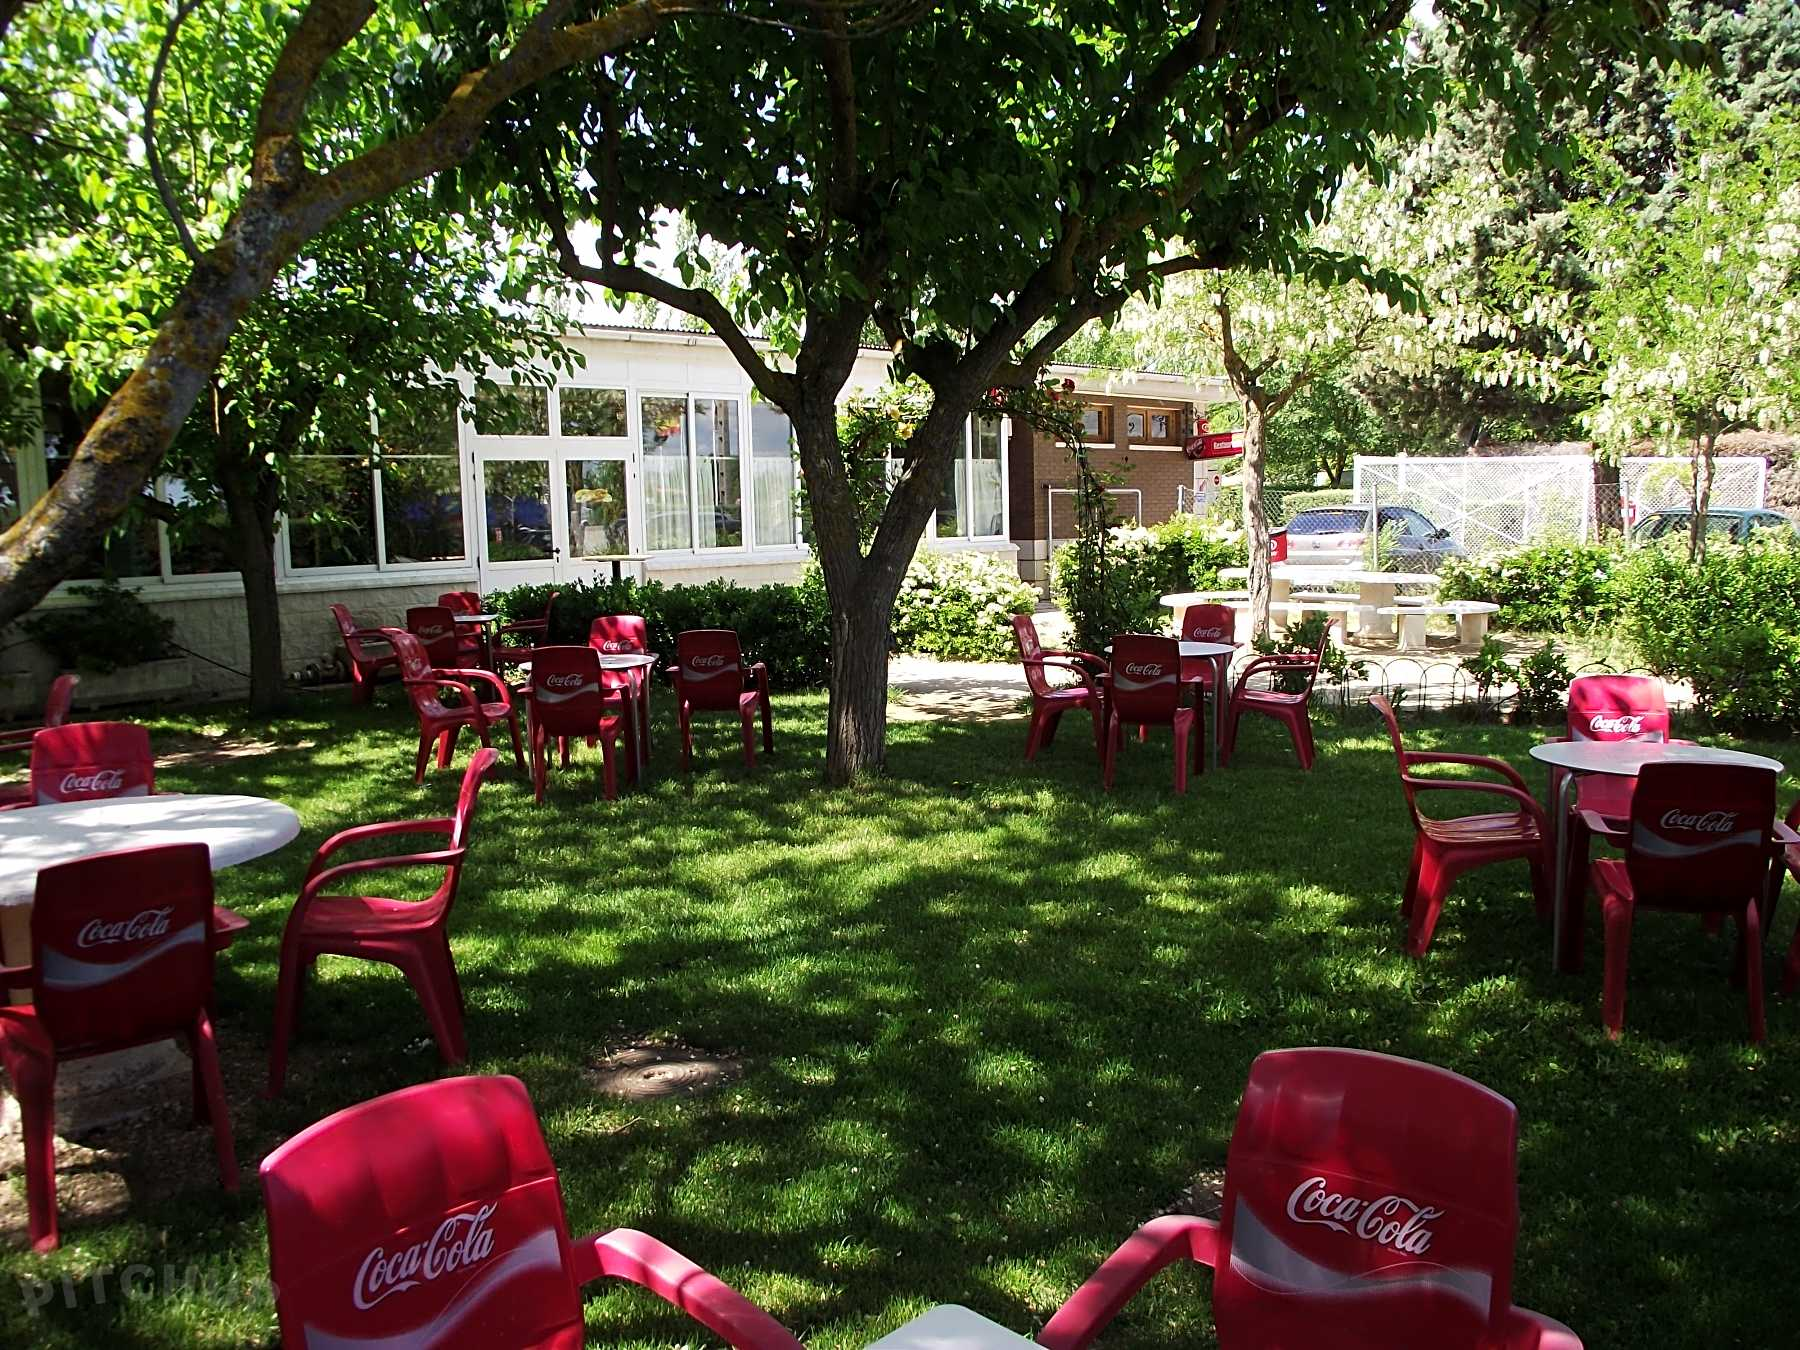 Best Campsites In Valladolid 2019 From £16.69